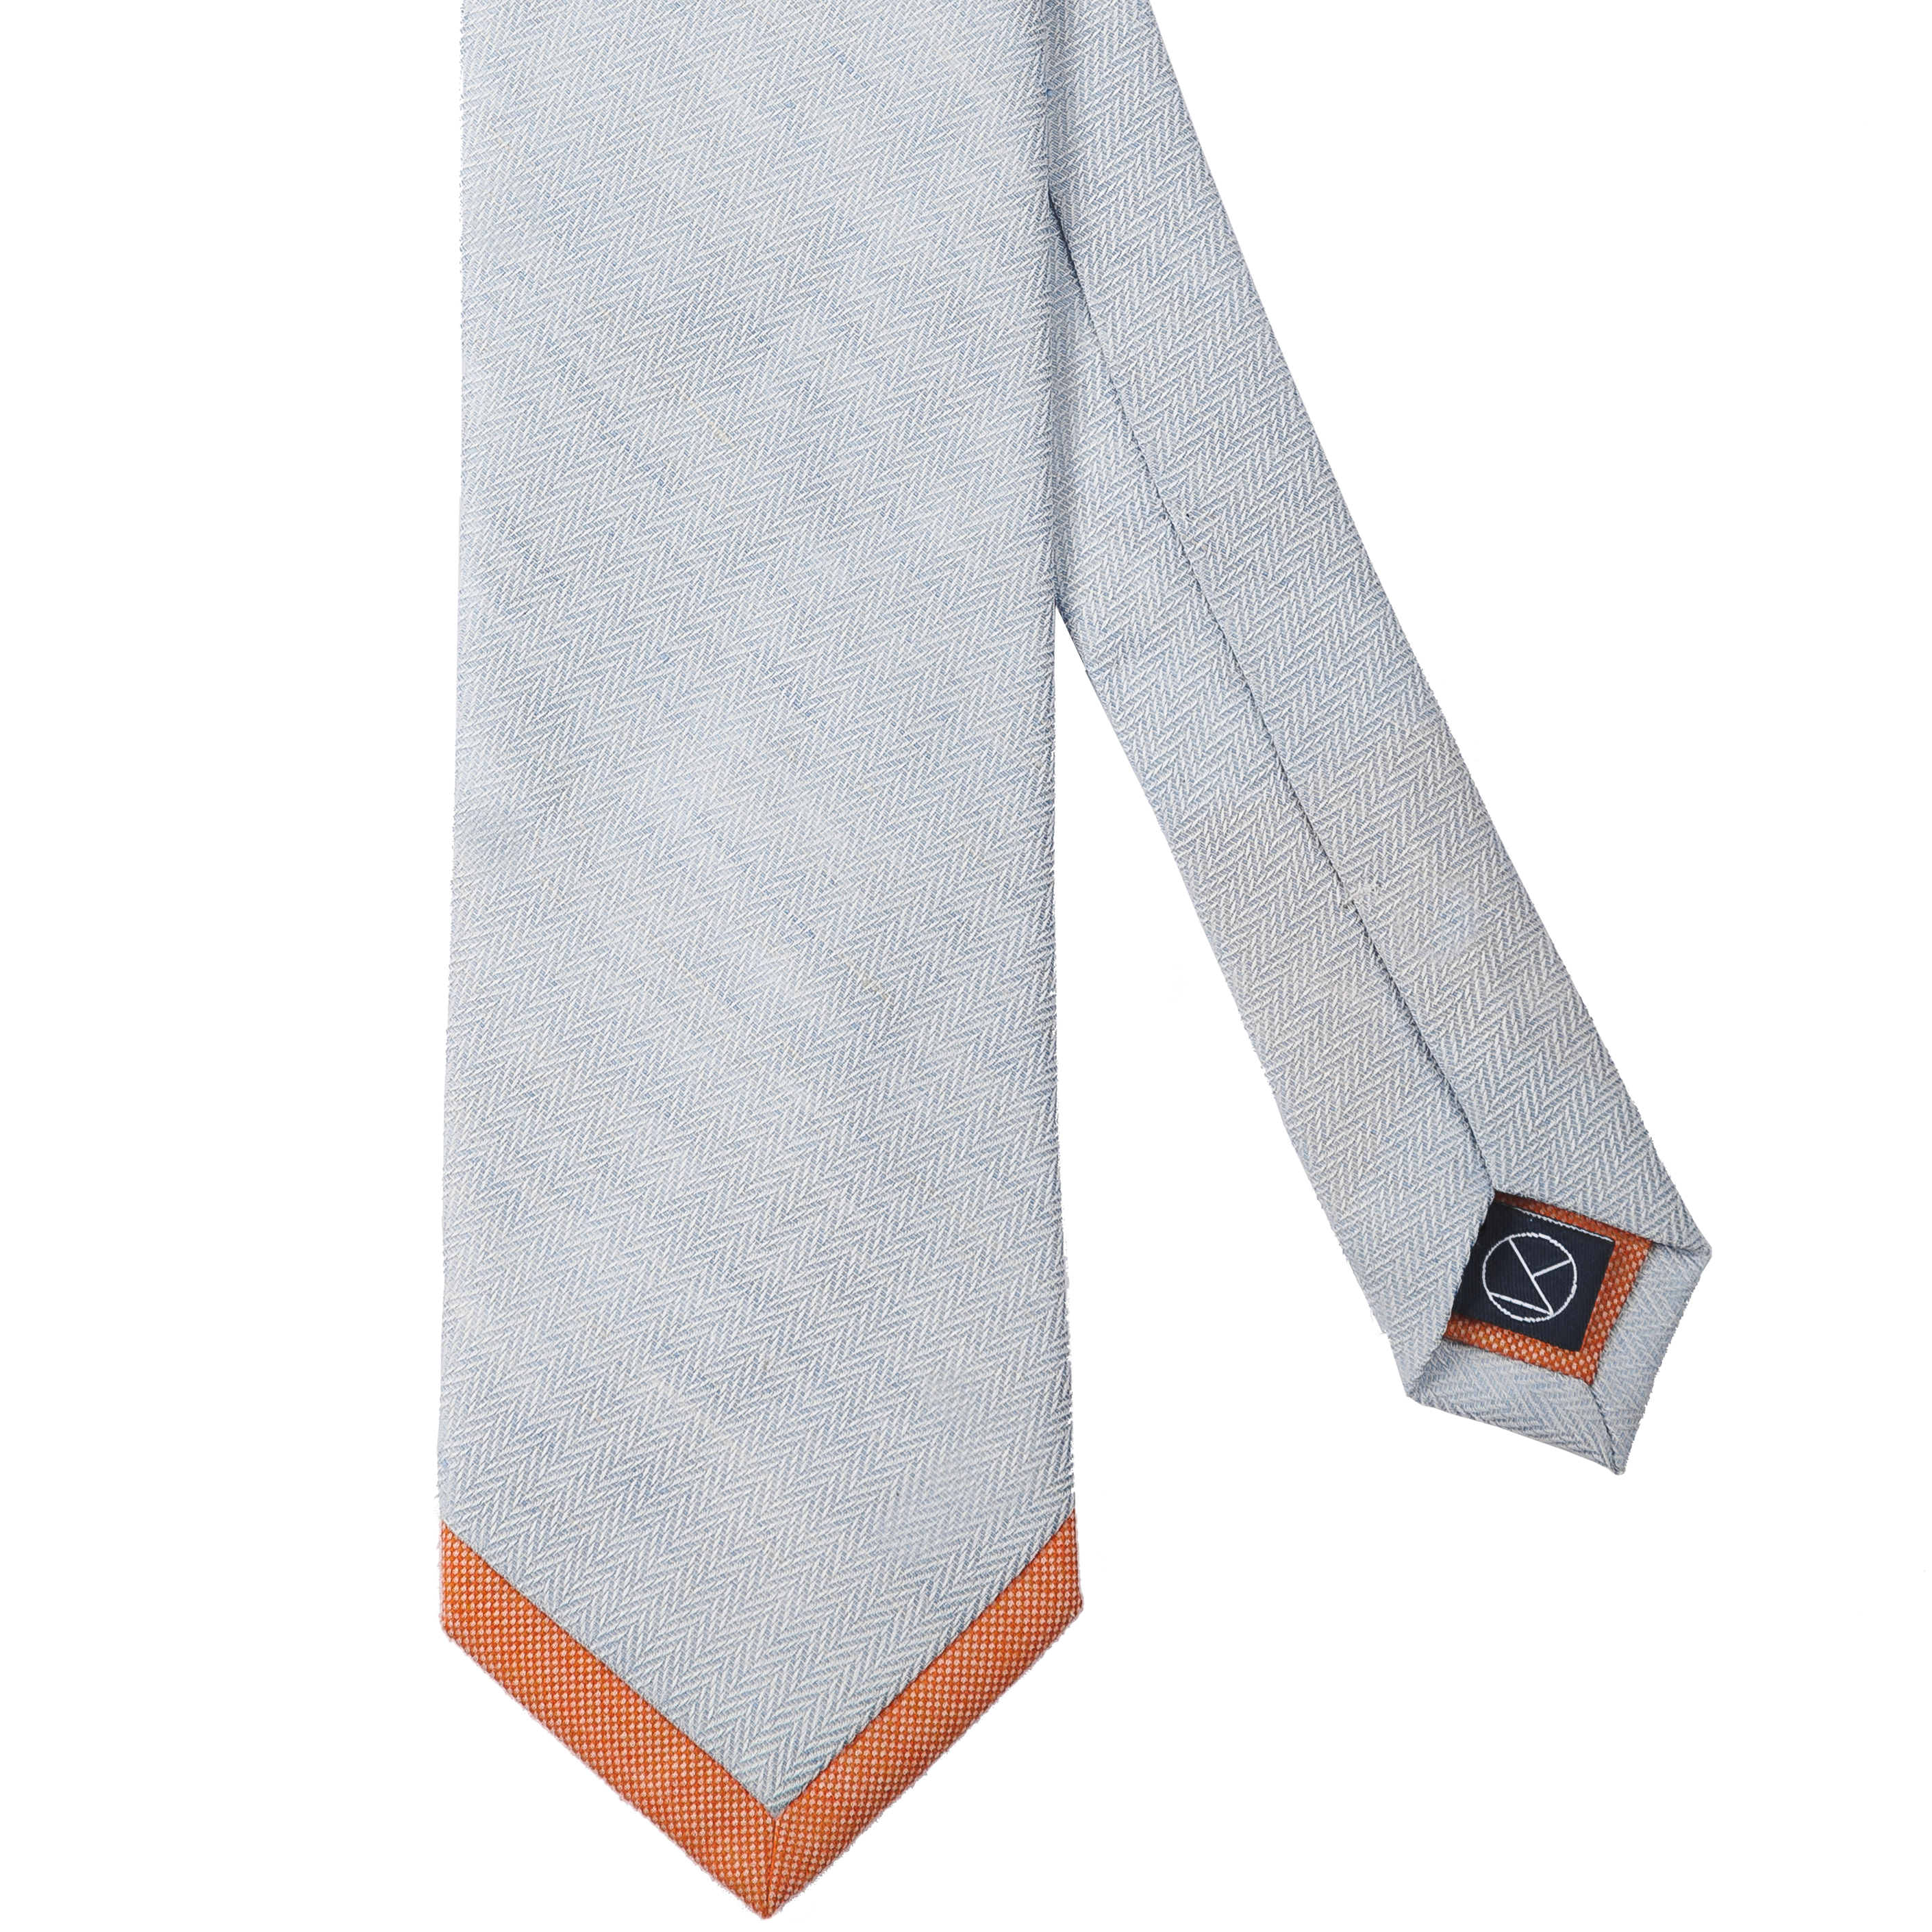 A soft blue herringbone pattern combined with an orange pointed tip.